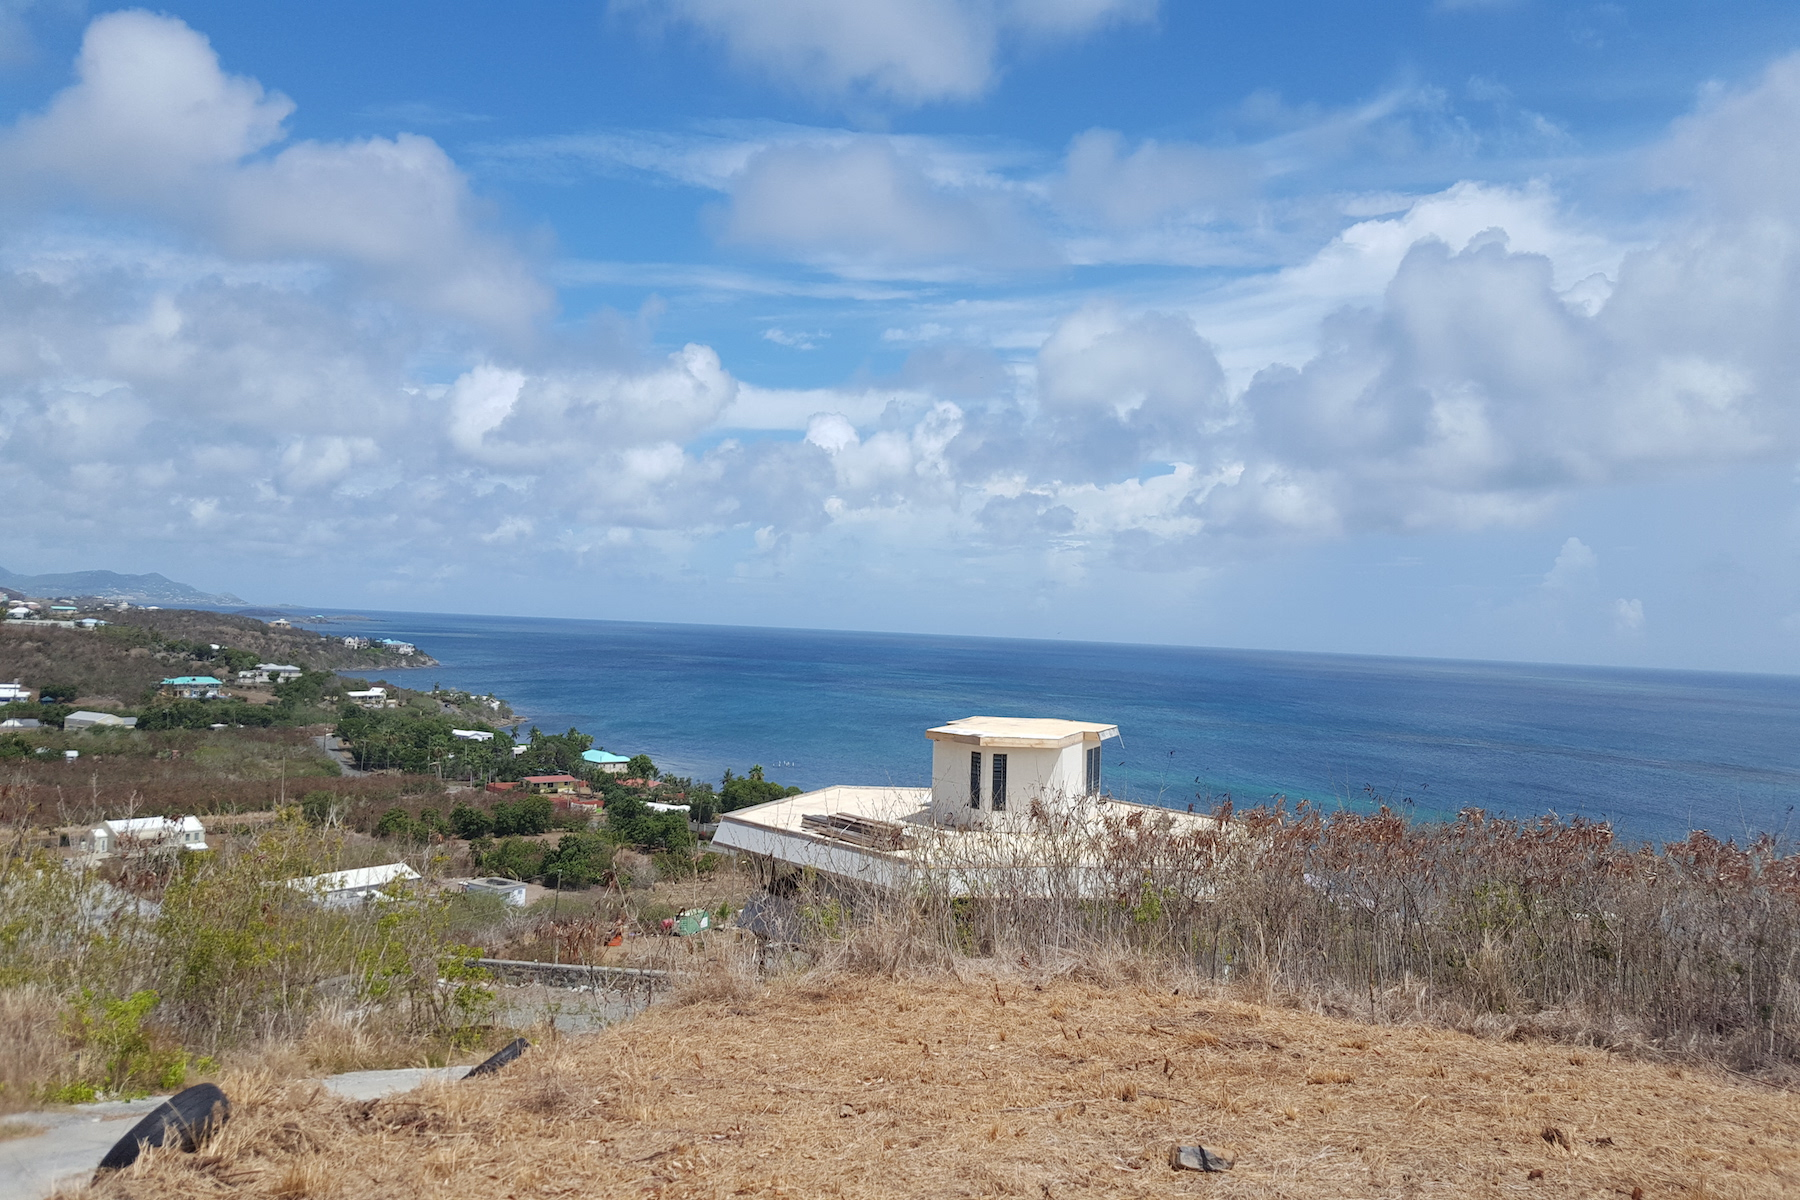 Additional photo for property listing at 237 Cotton Valley 237 Cotton Valley St Croix, Virgin Islands 00820 United States Virgin Islands